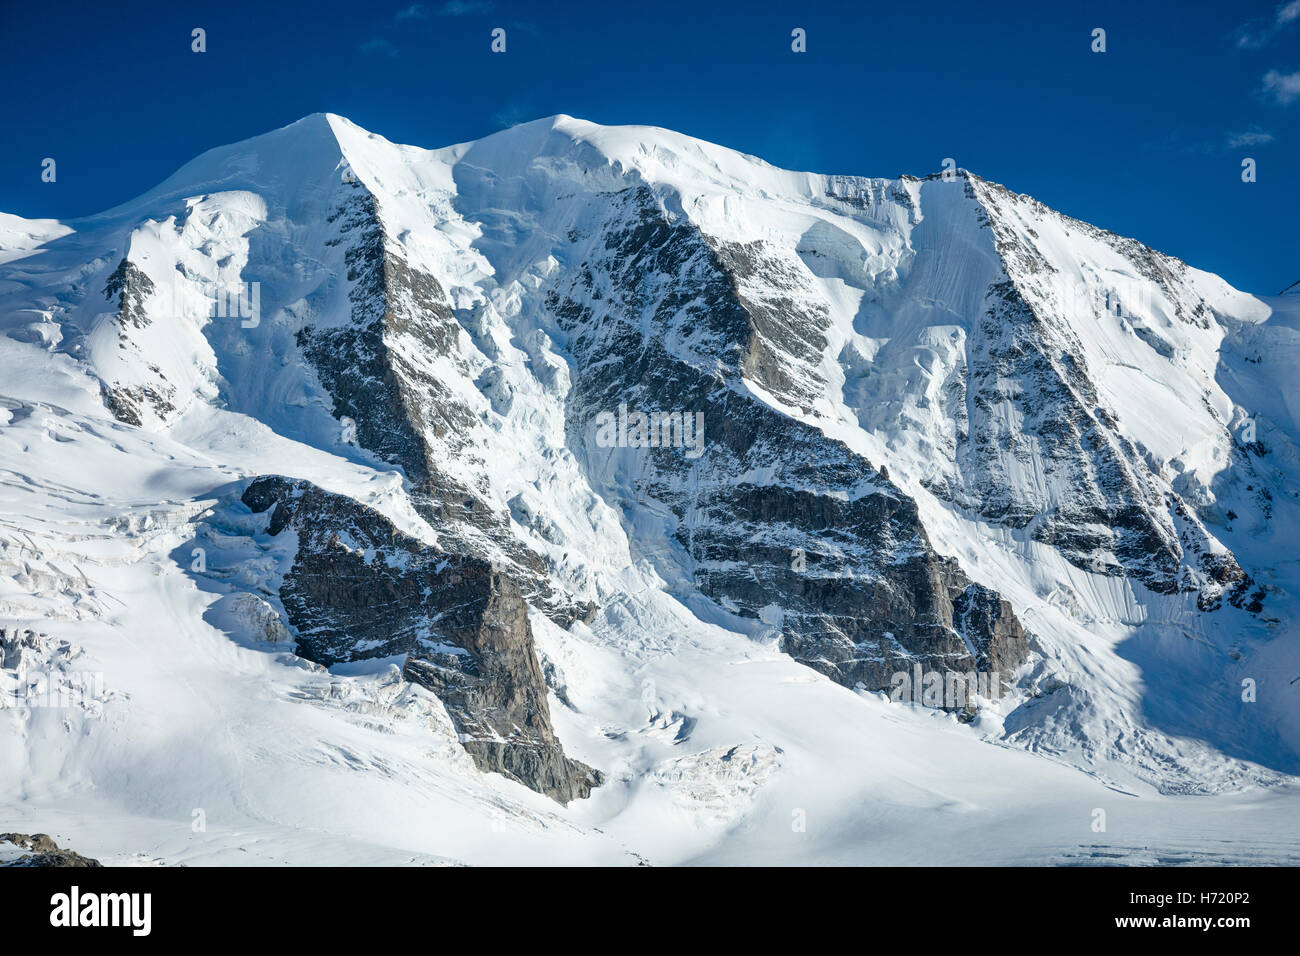 Piz Palu from Diavolezza, Berniner Alps, Graubunden, Switzerland. - Stock Image